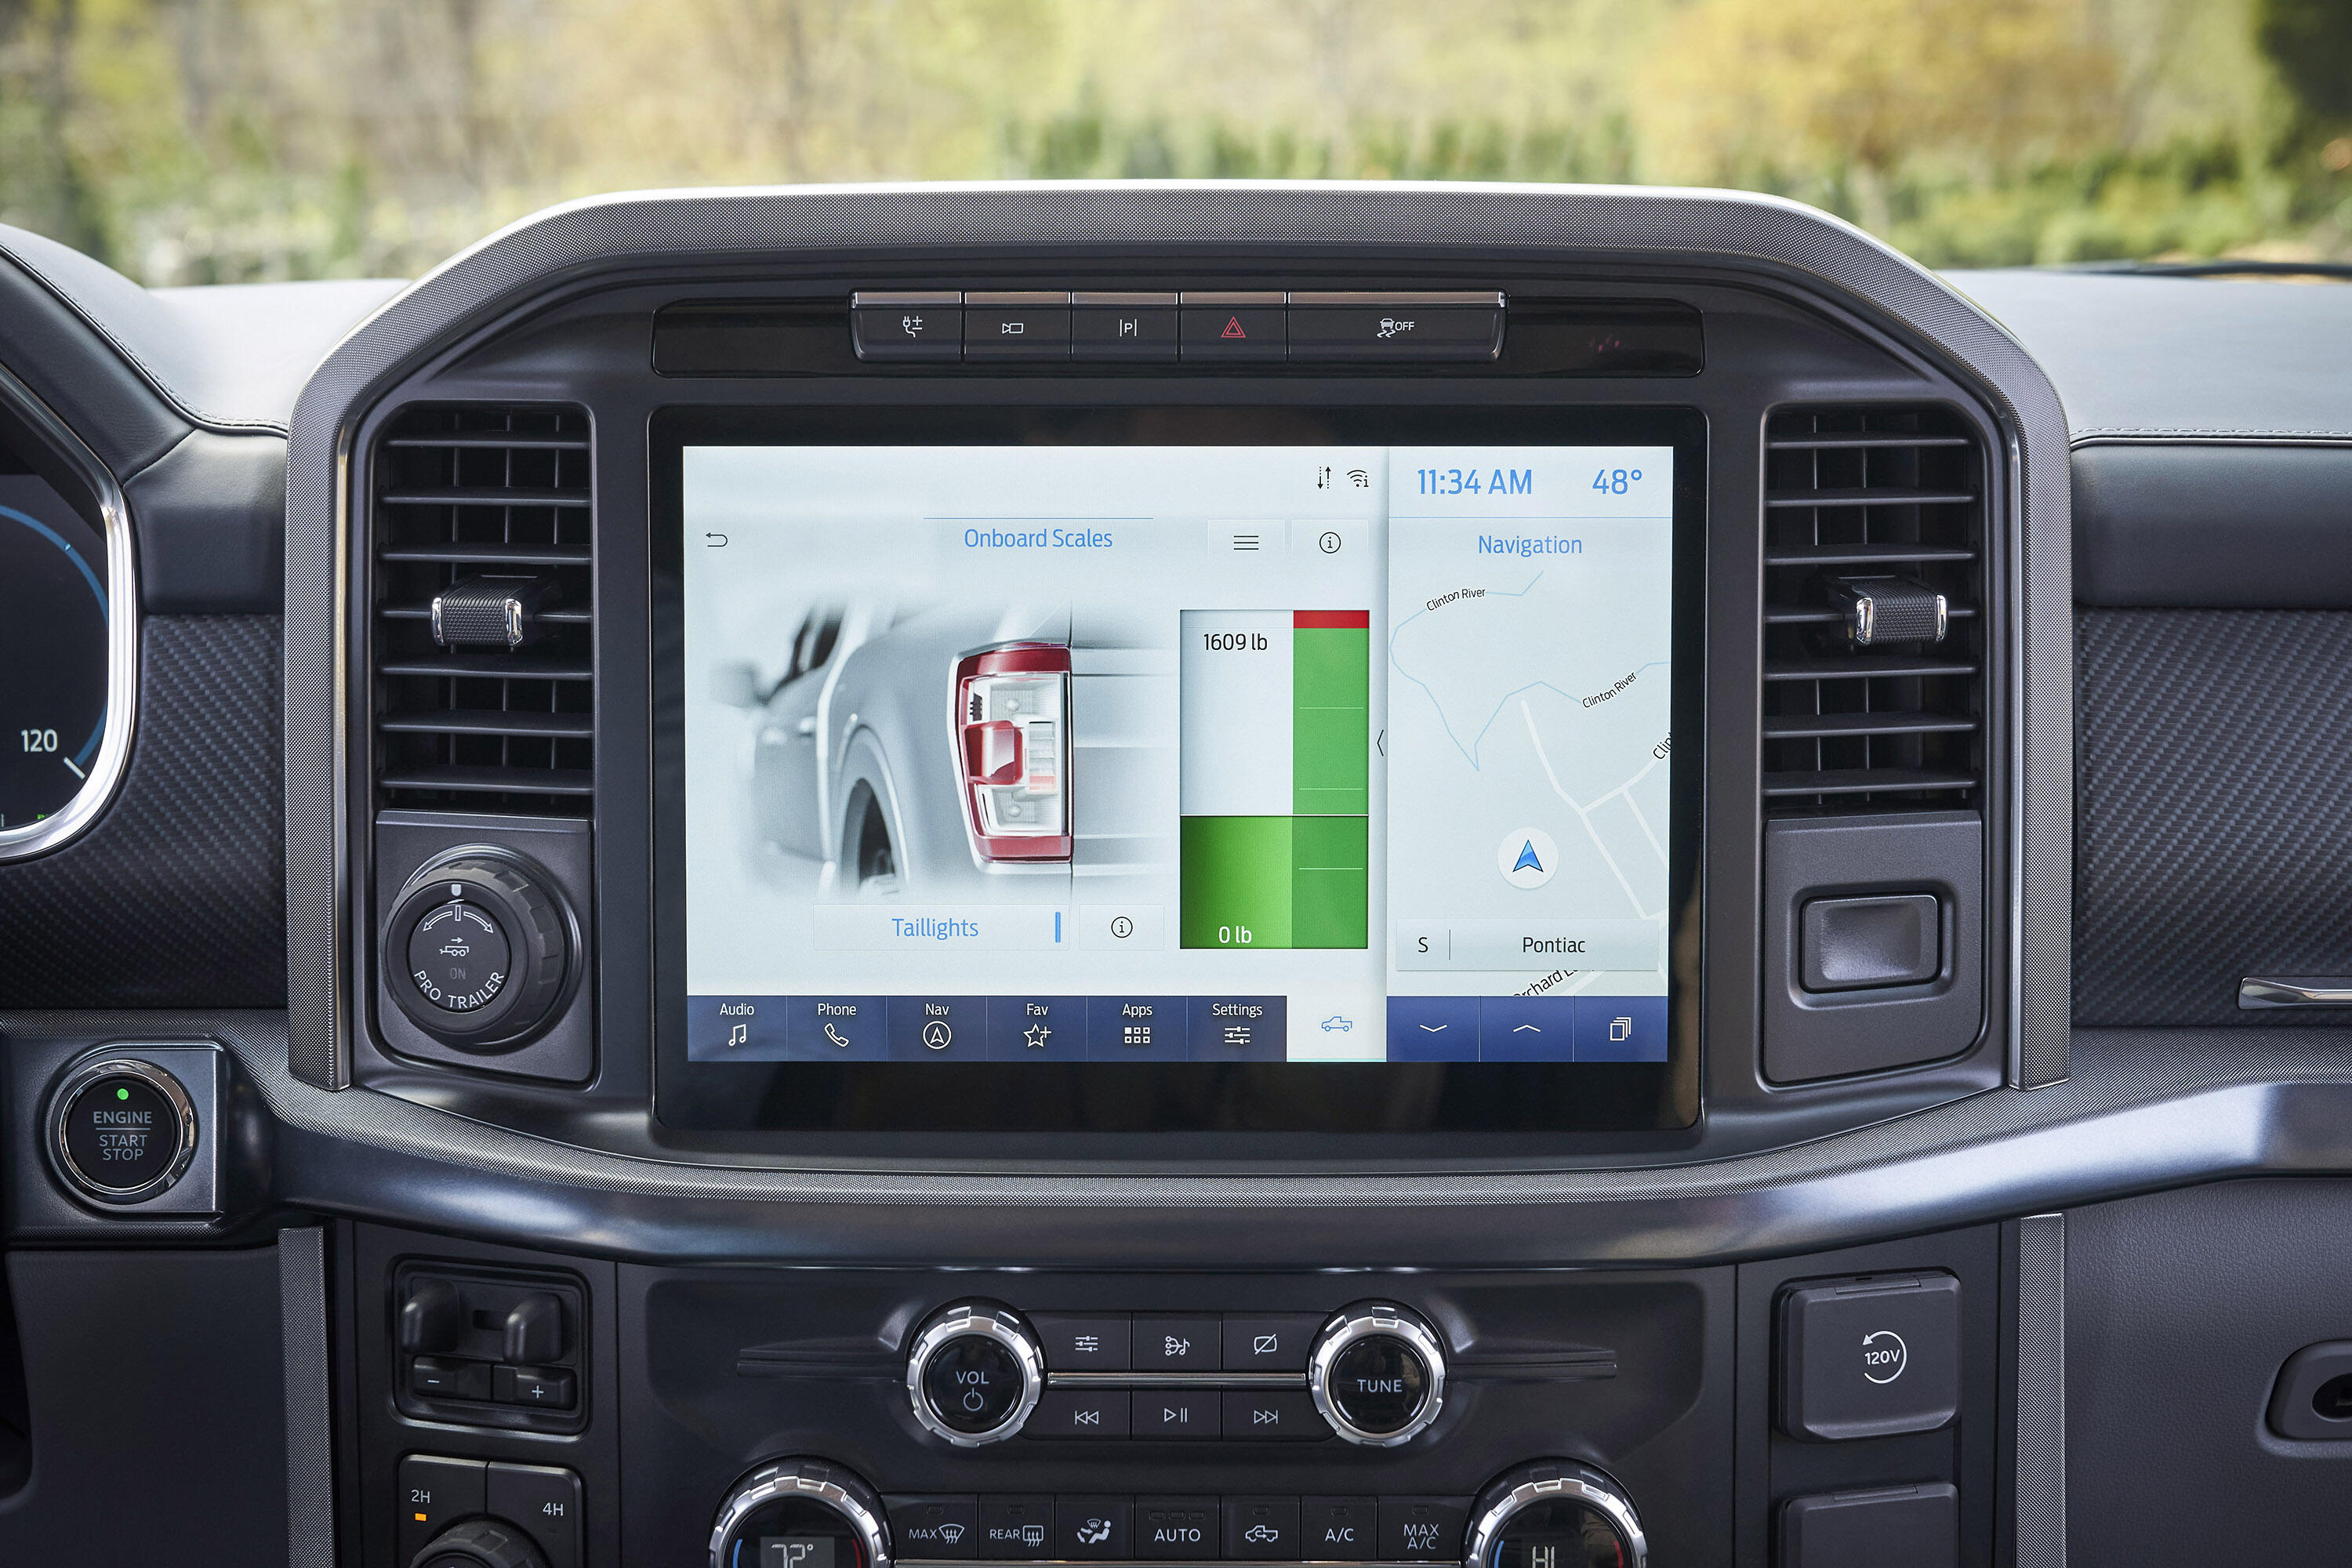 2021 Ford F-150 Onboard Scales